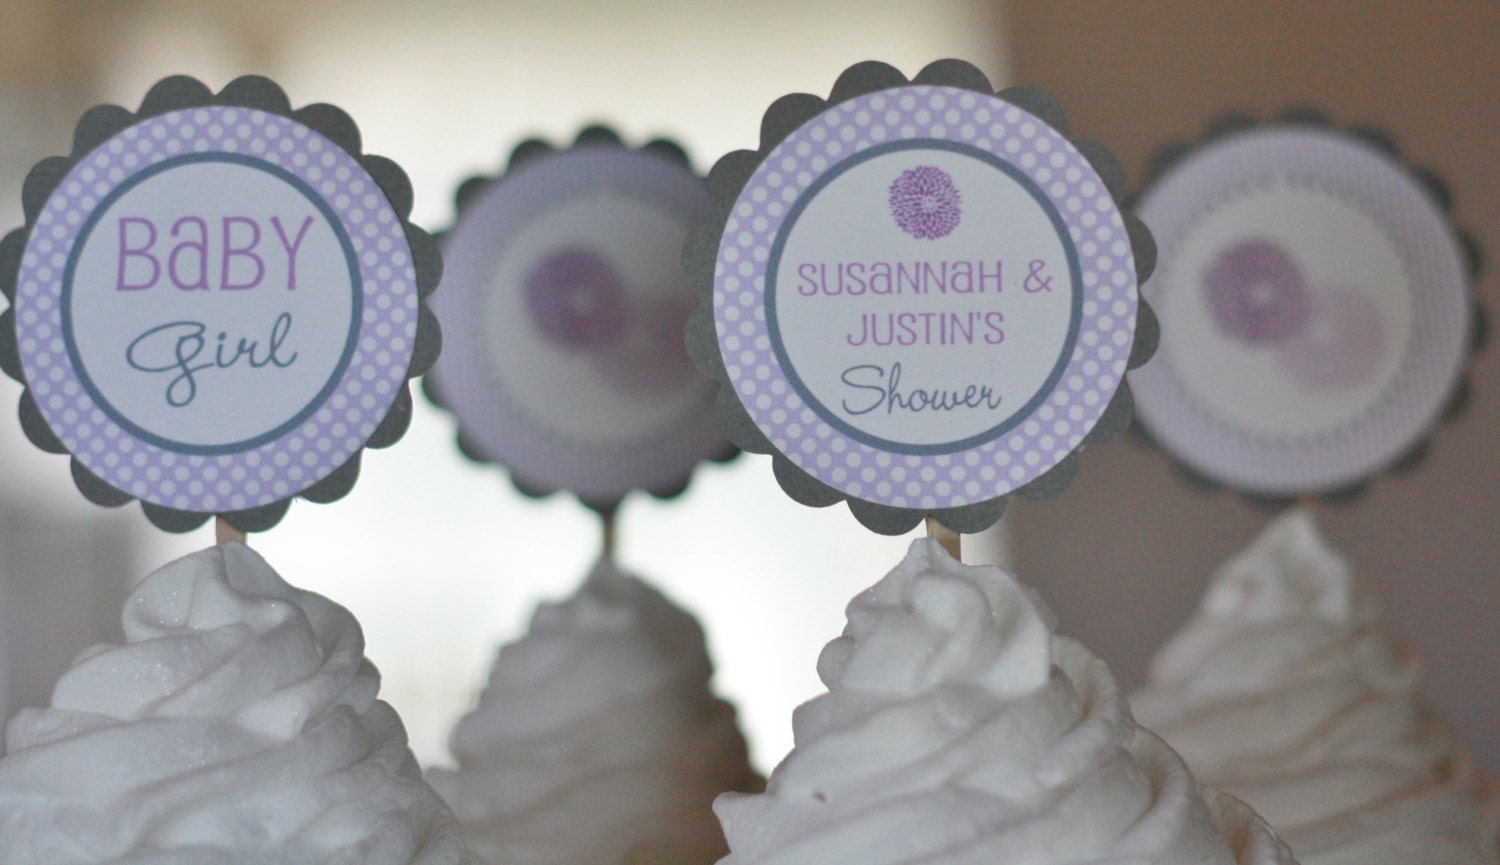 12 baby shower purple lavender grey dahlia flower cupcake or